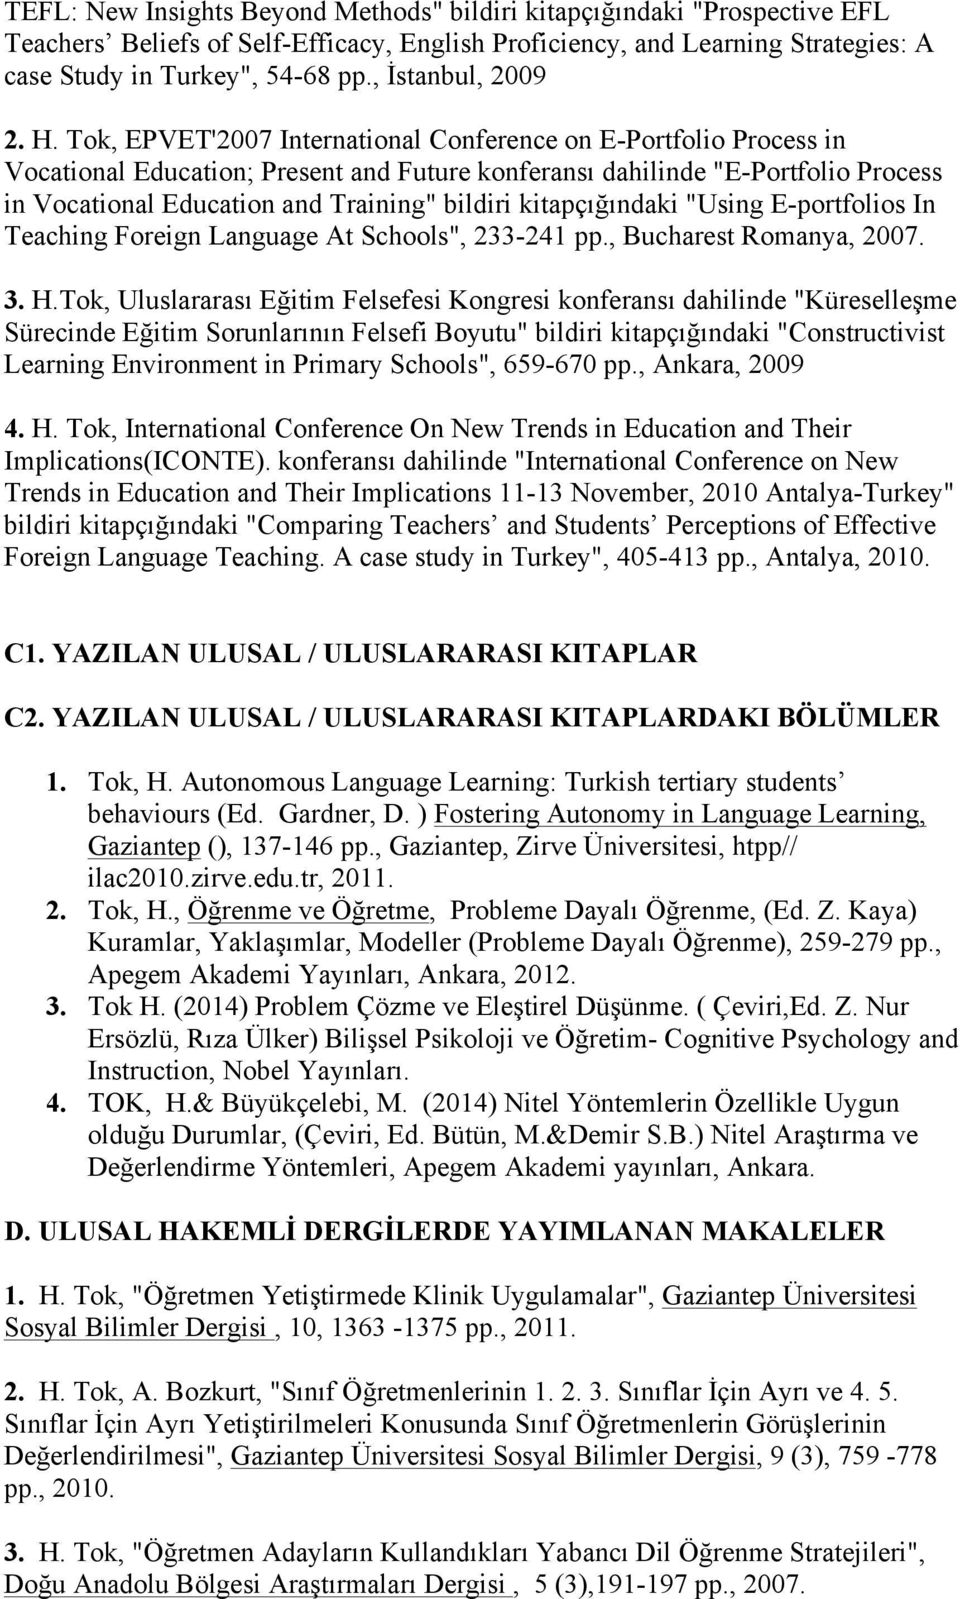 "Tok, EPVET'2007 International Conference on E-Portfolio Process in Vocational Education; Present and Future konferansı dahilinde ""E-Portfolio Process in Vocational Education and Training"" bildiri"